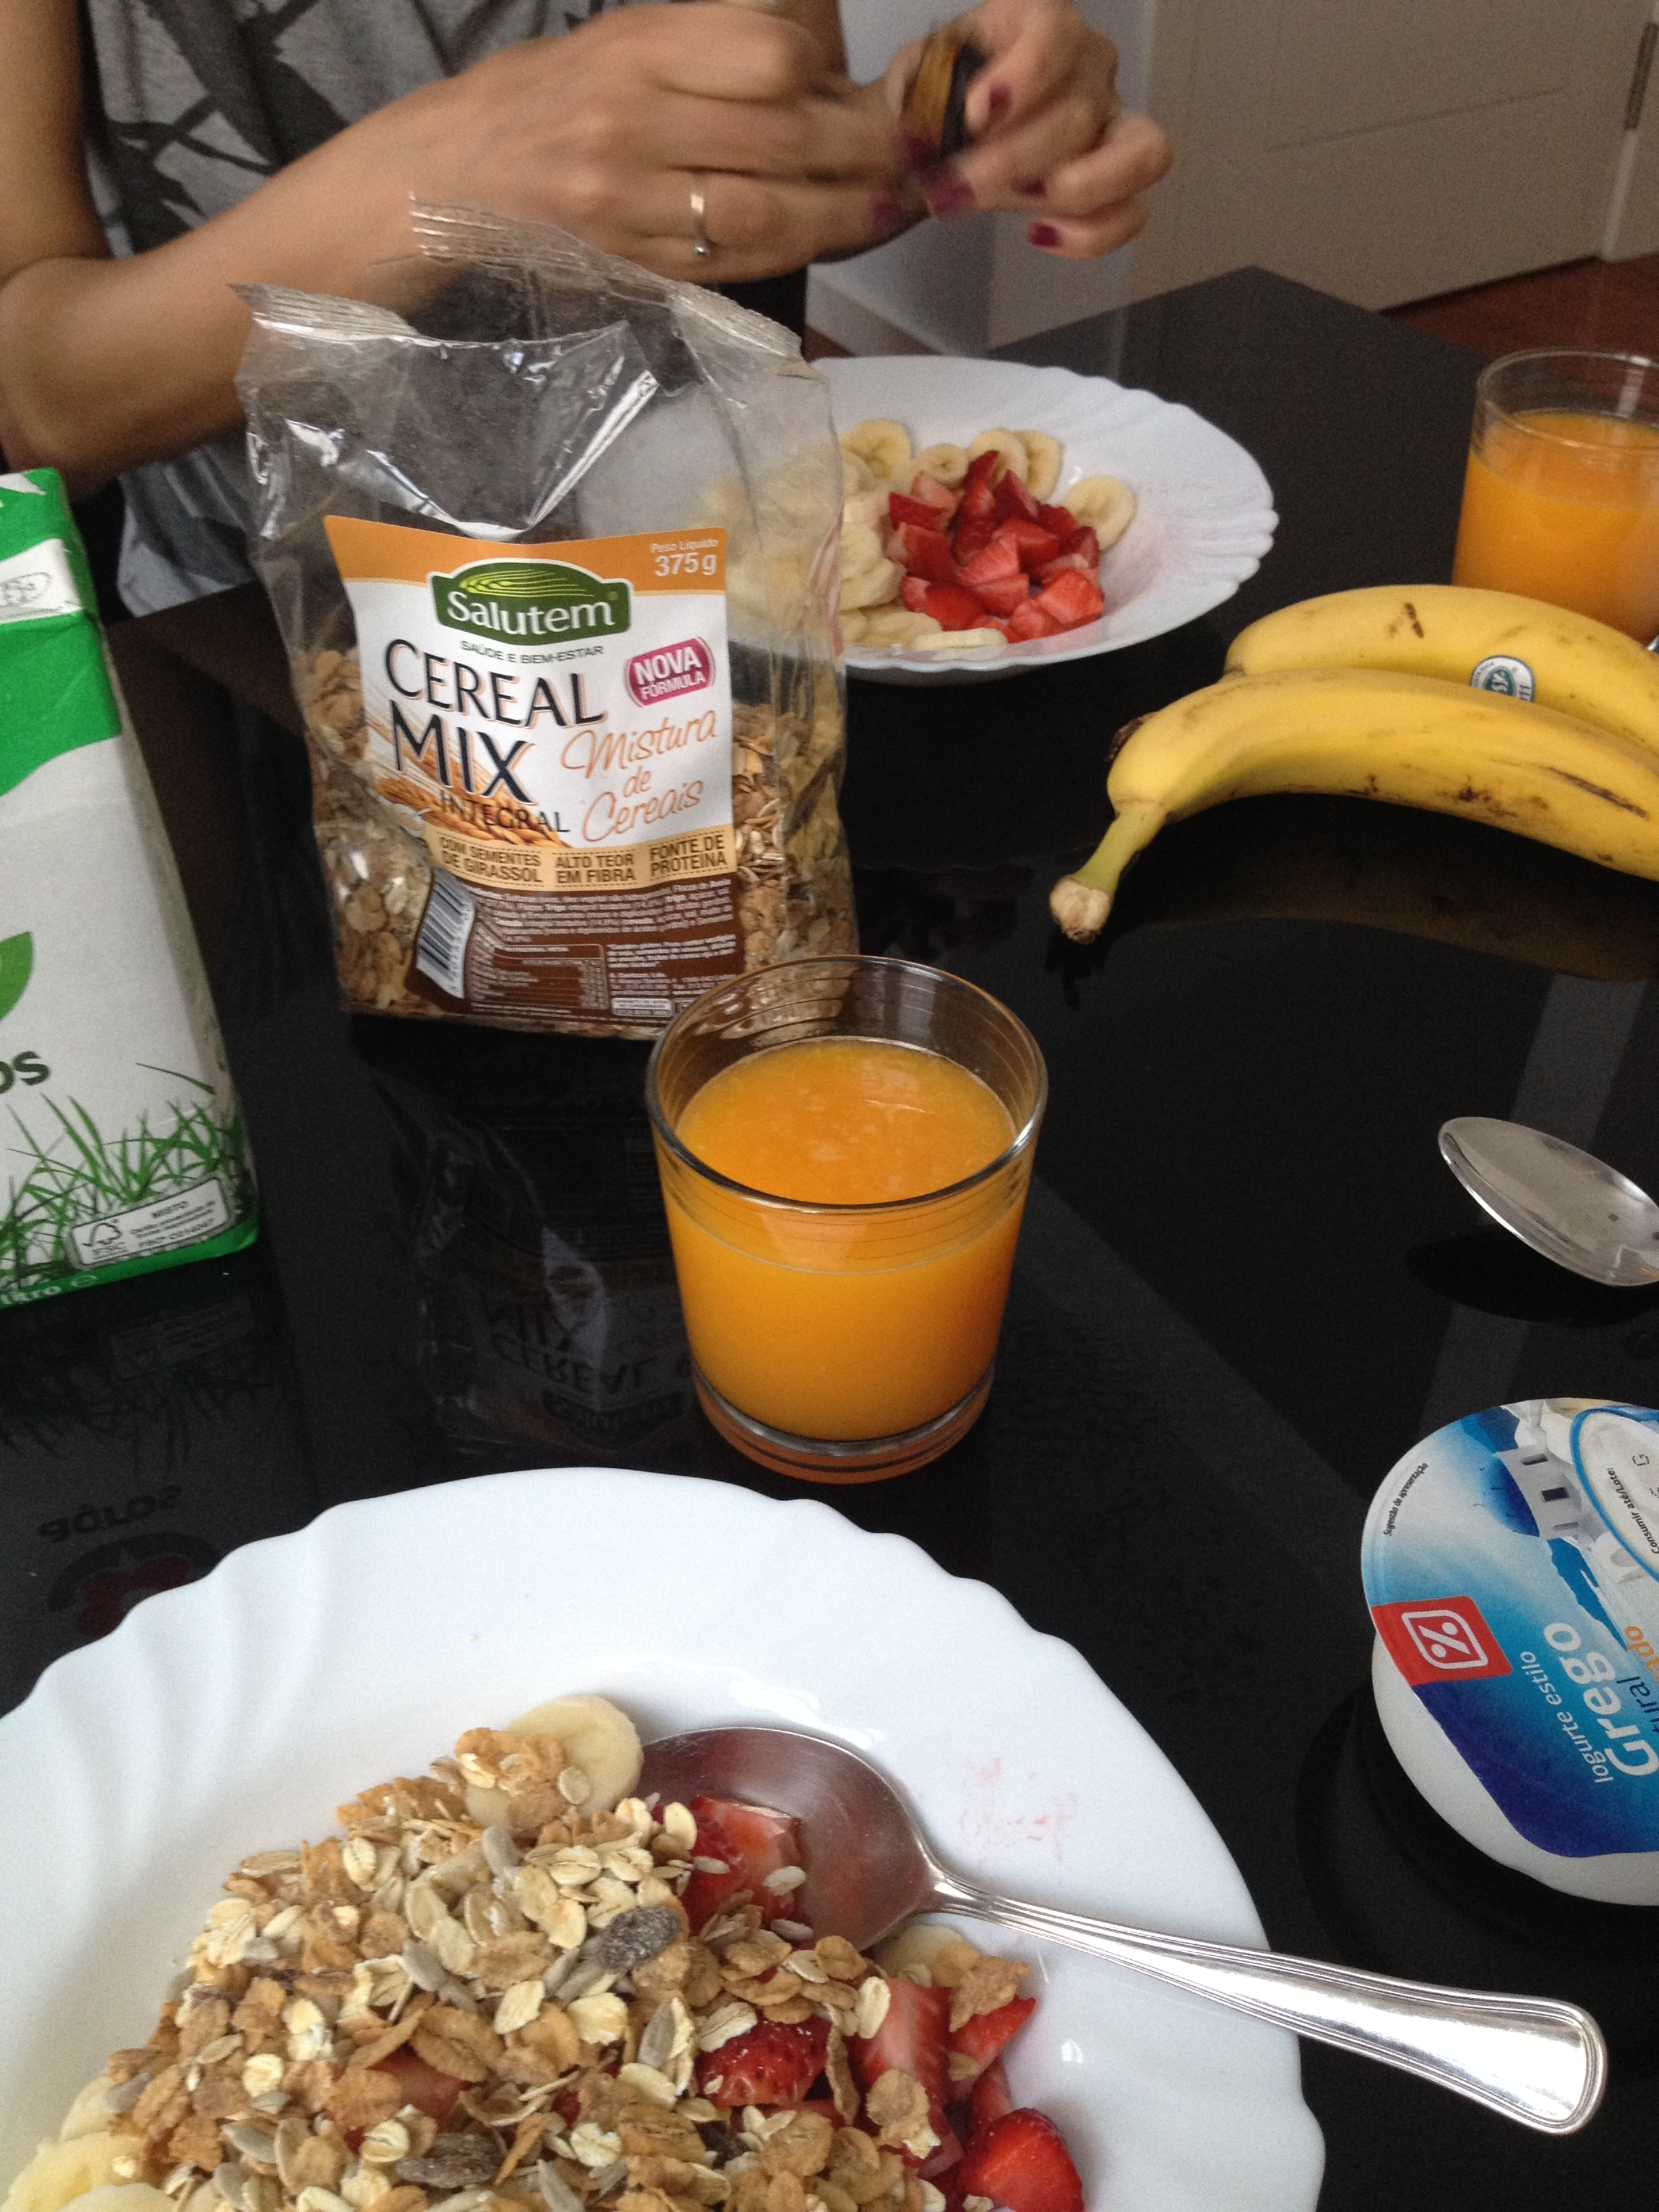 Note the requisite breakfast banana.